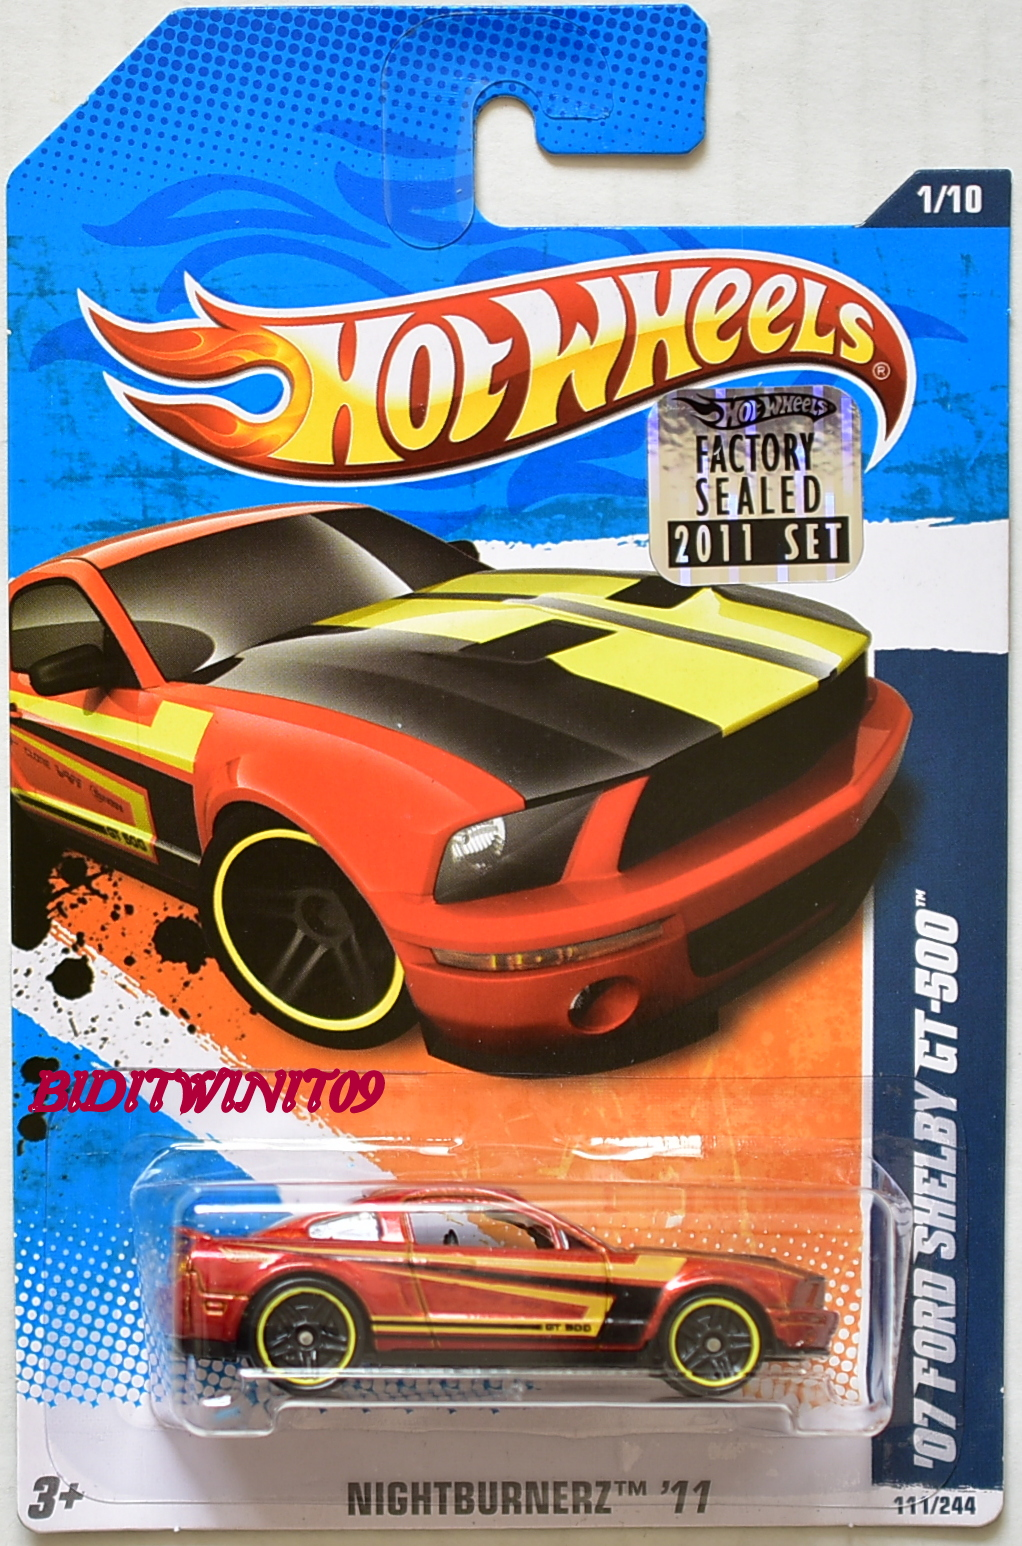 HOT WHEELS 2011 NIGHTBURNERZ '07 FORD SHELBY GT-500 #1/10 FACTORY SEALED